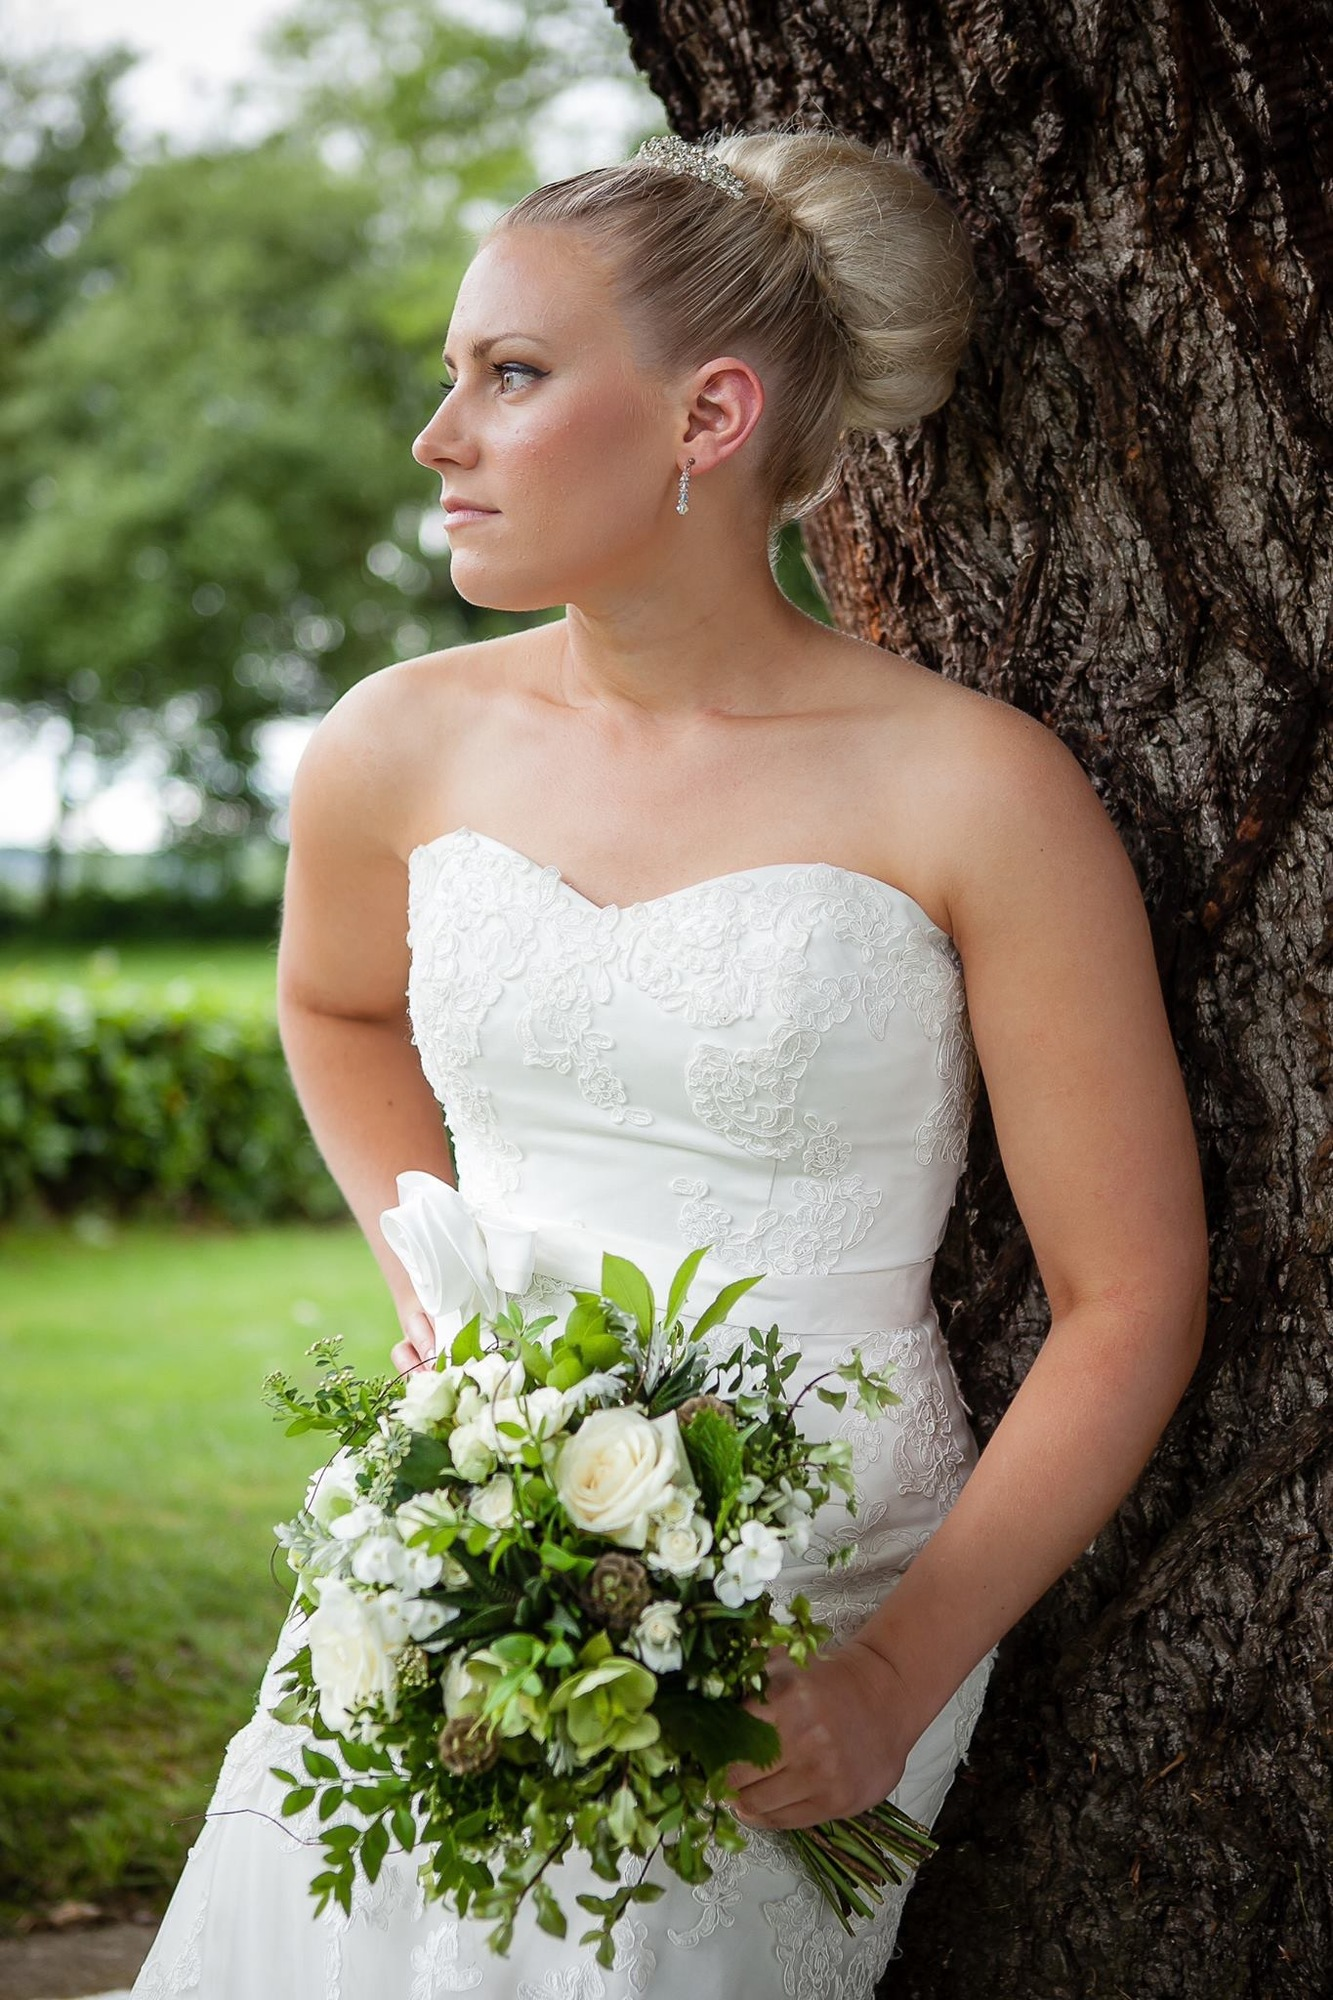 creations freelance hairdressing , wedding hair stylists in